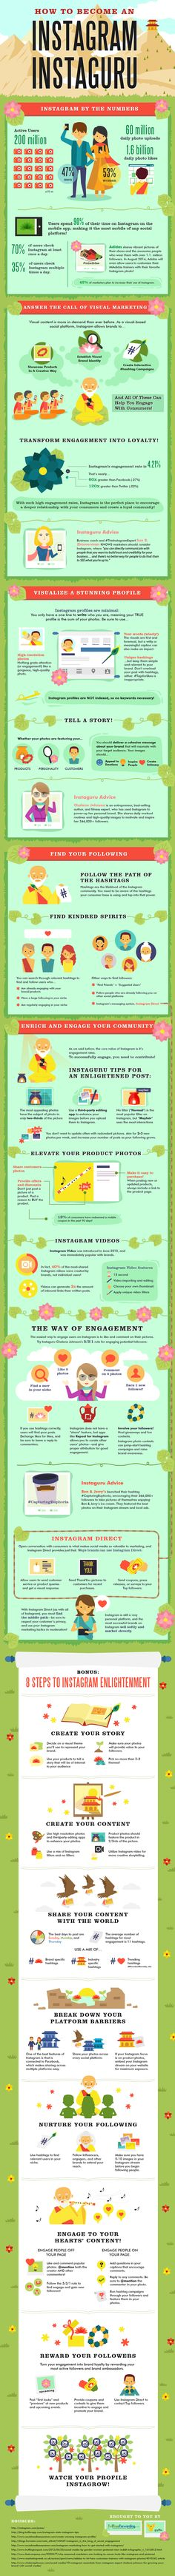 Social Media Marketing On Instagram: Become An Instaguru — #infographic